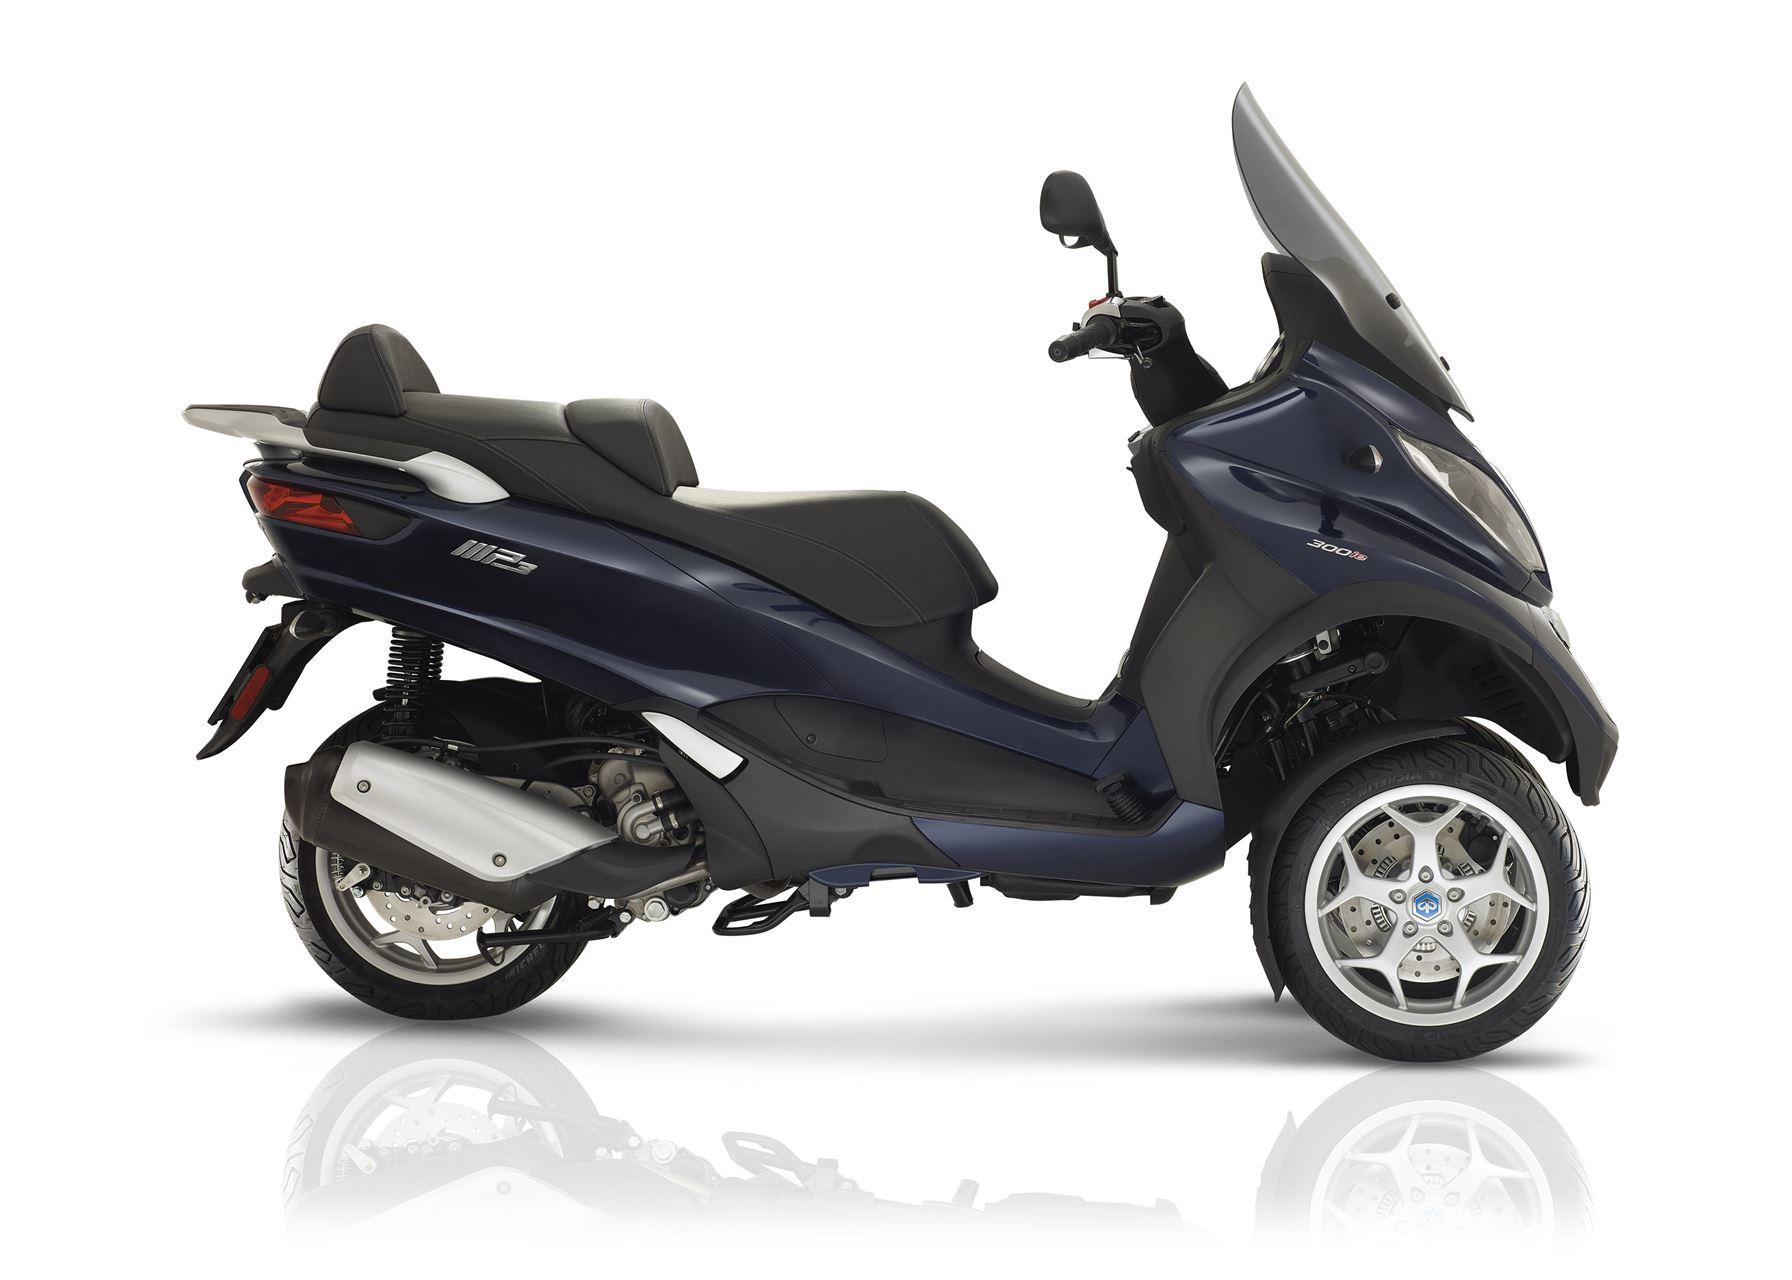 piaggio mp3 300 lt business scooter acima 125 cc lombas e curvas. Black Bedroom Furniture Sets. Home Design Ideas